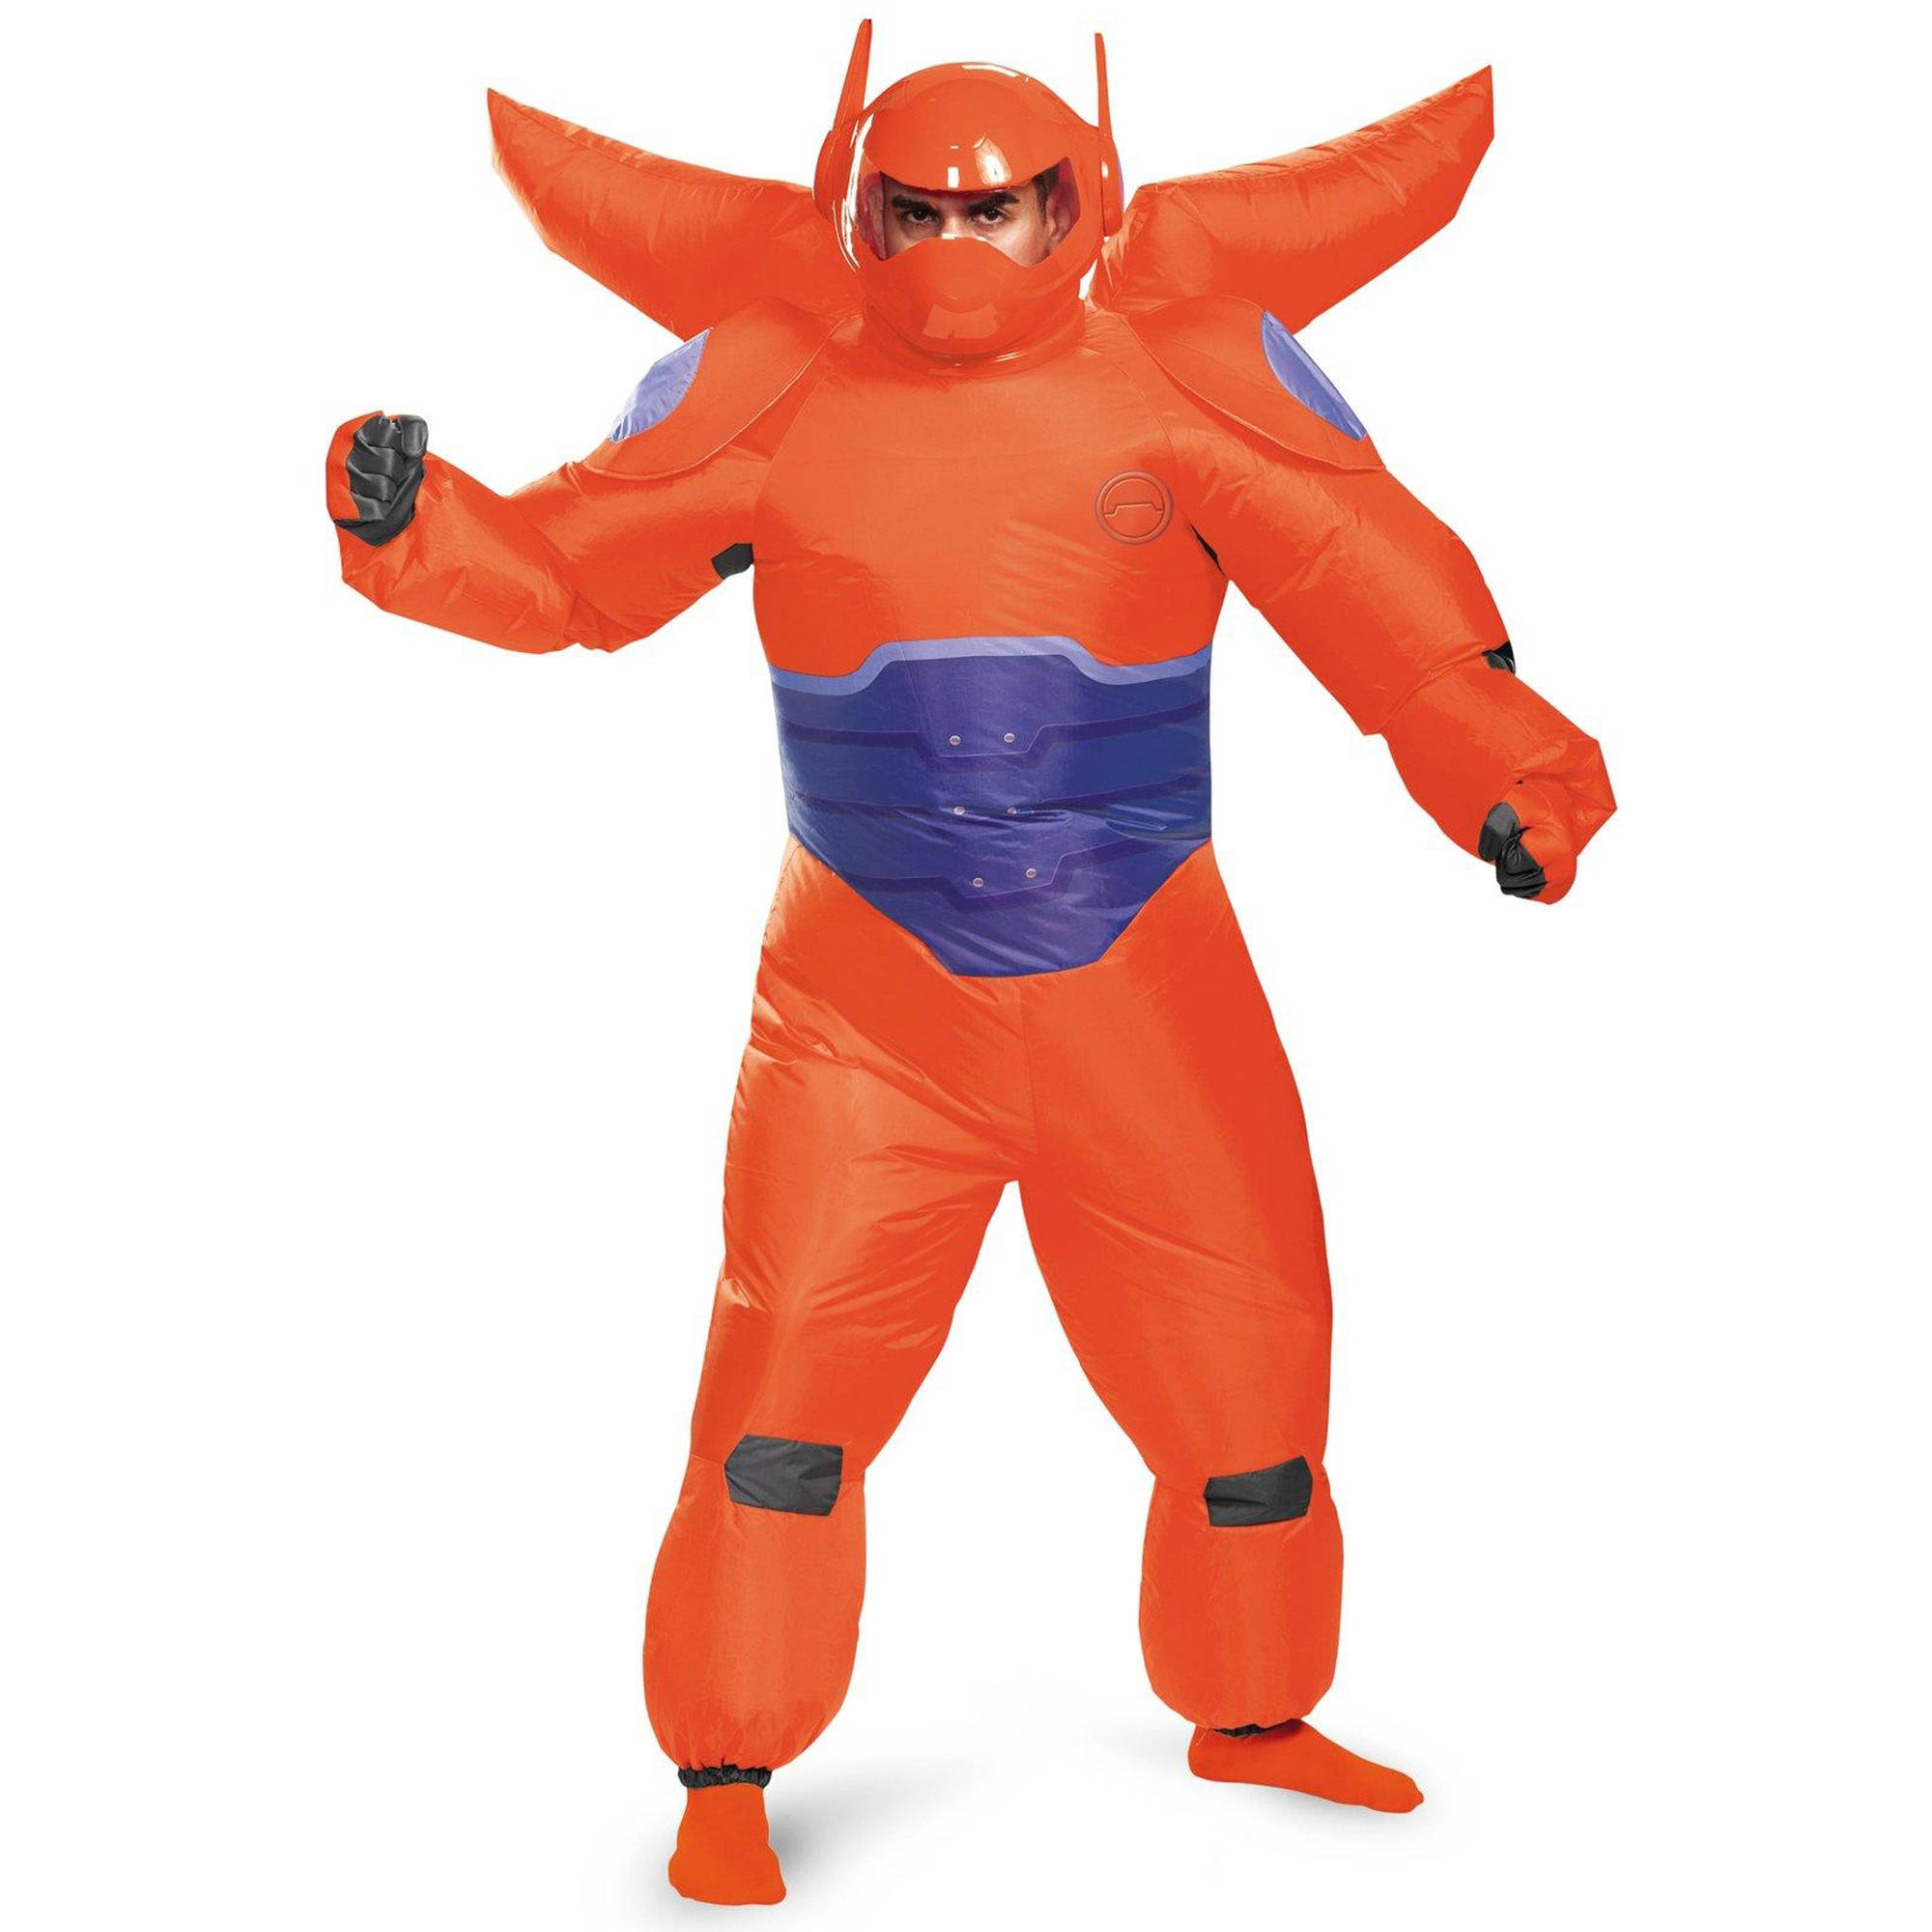 Big Hero 6 Red Baymax Inflatable Adult Halloween Costume, 1 Size